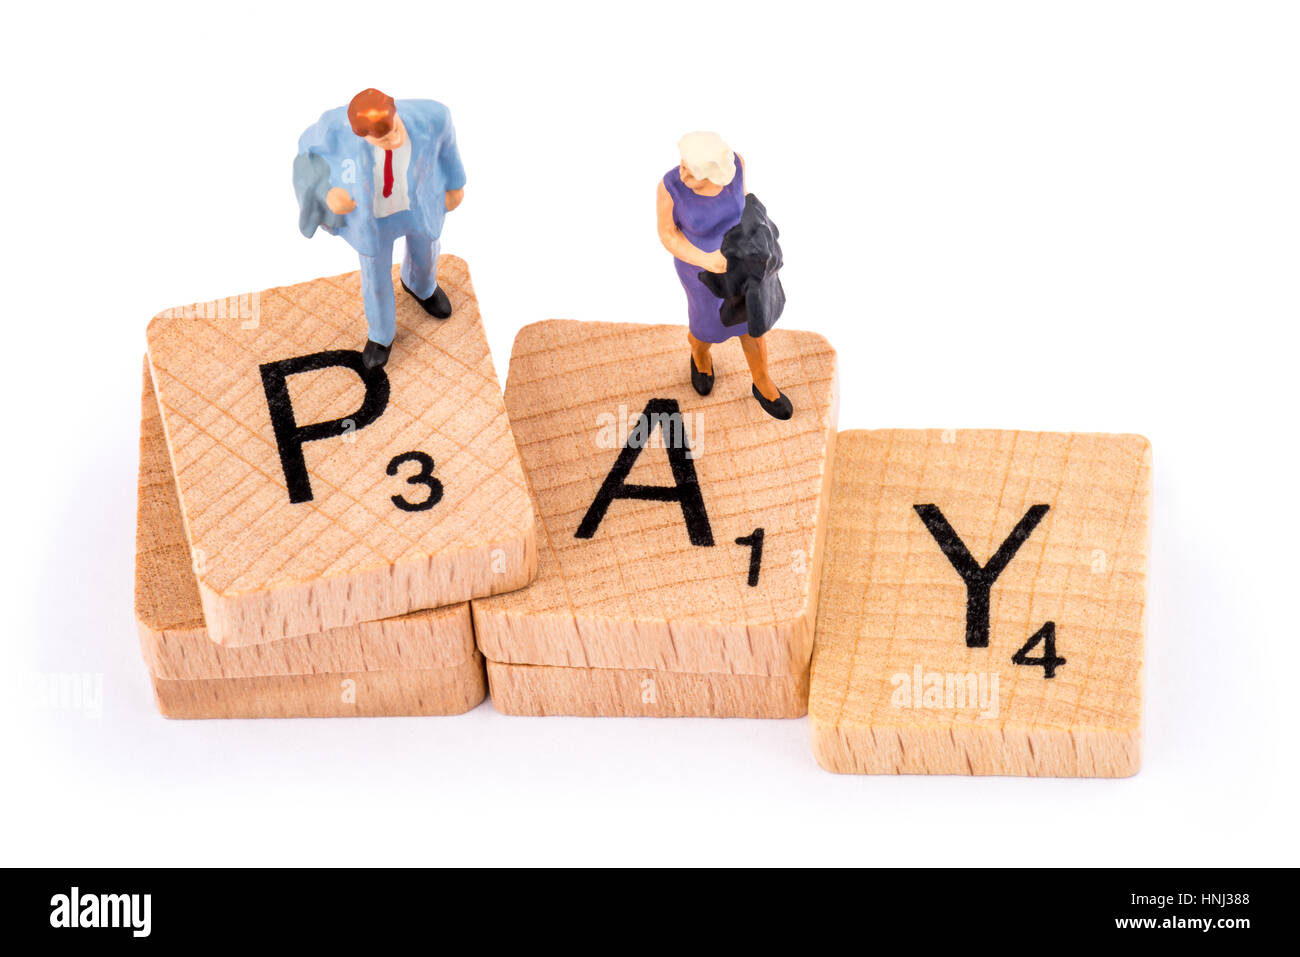 Scrabble letters make up the word PAY. A woman stands on the letter A and a  man stands above her on the letter - Stock Image